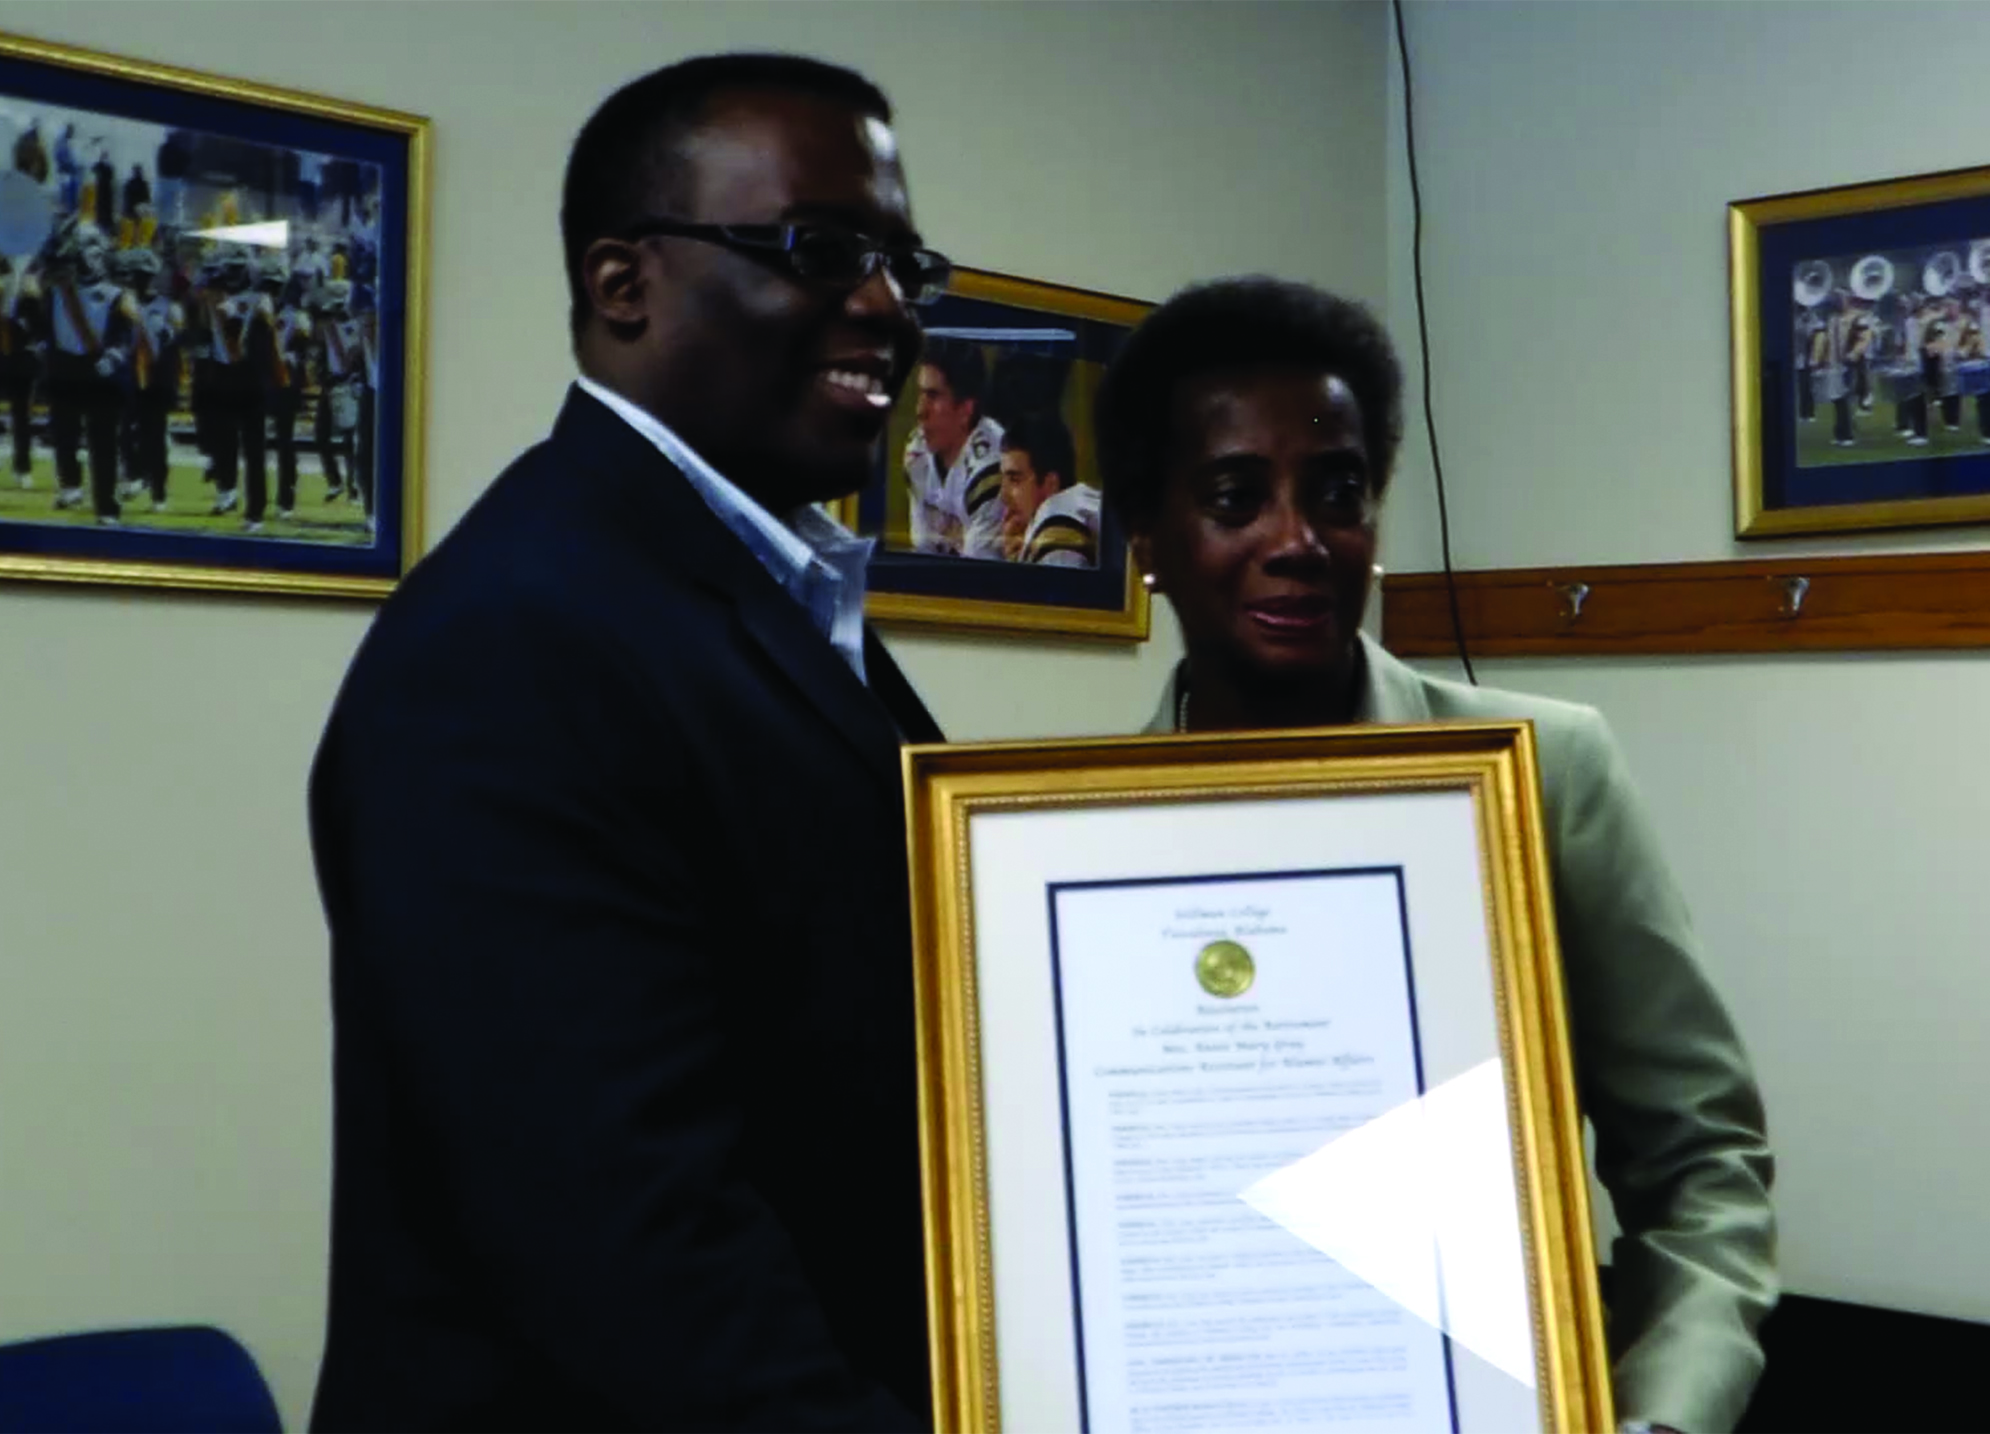 Dr. Peter Millet presented Ms. Gray with a resolution.